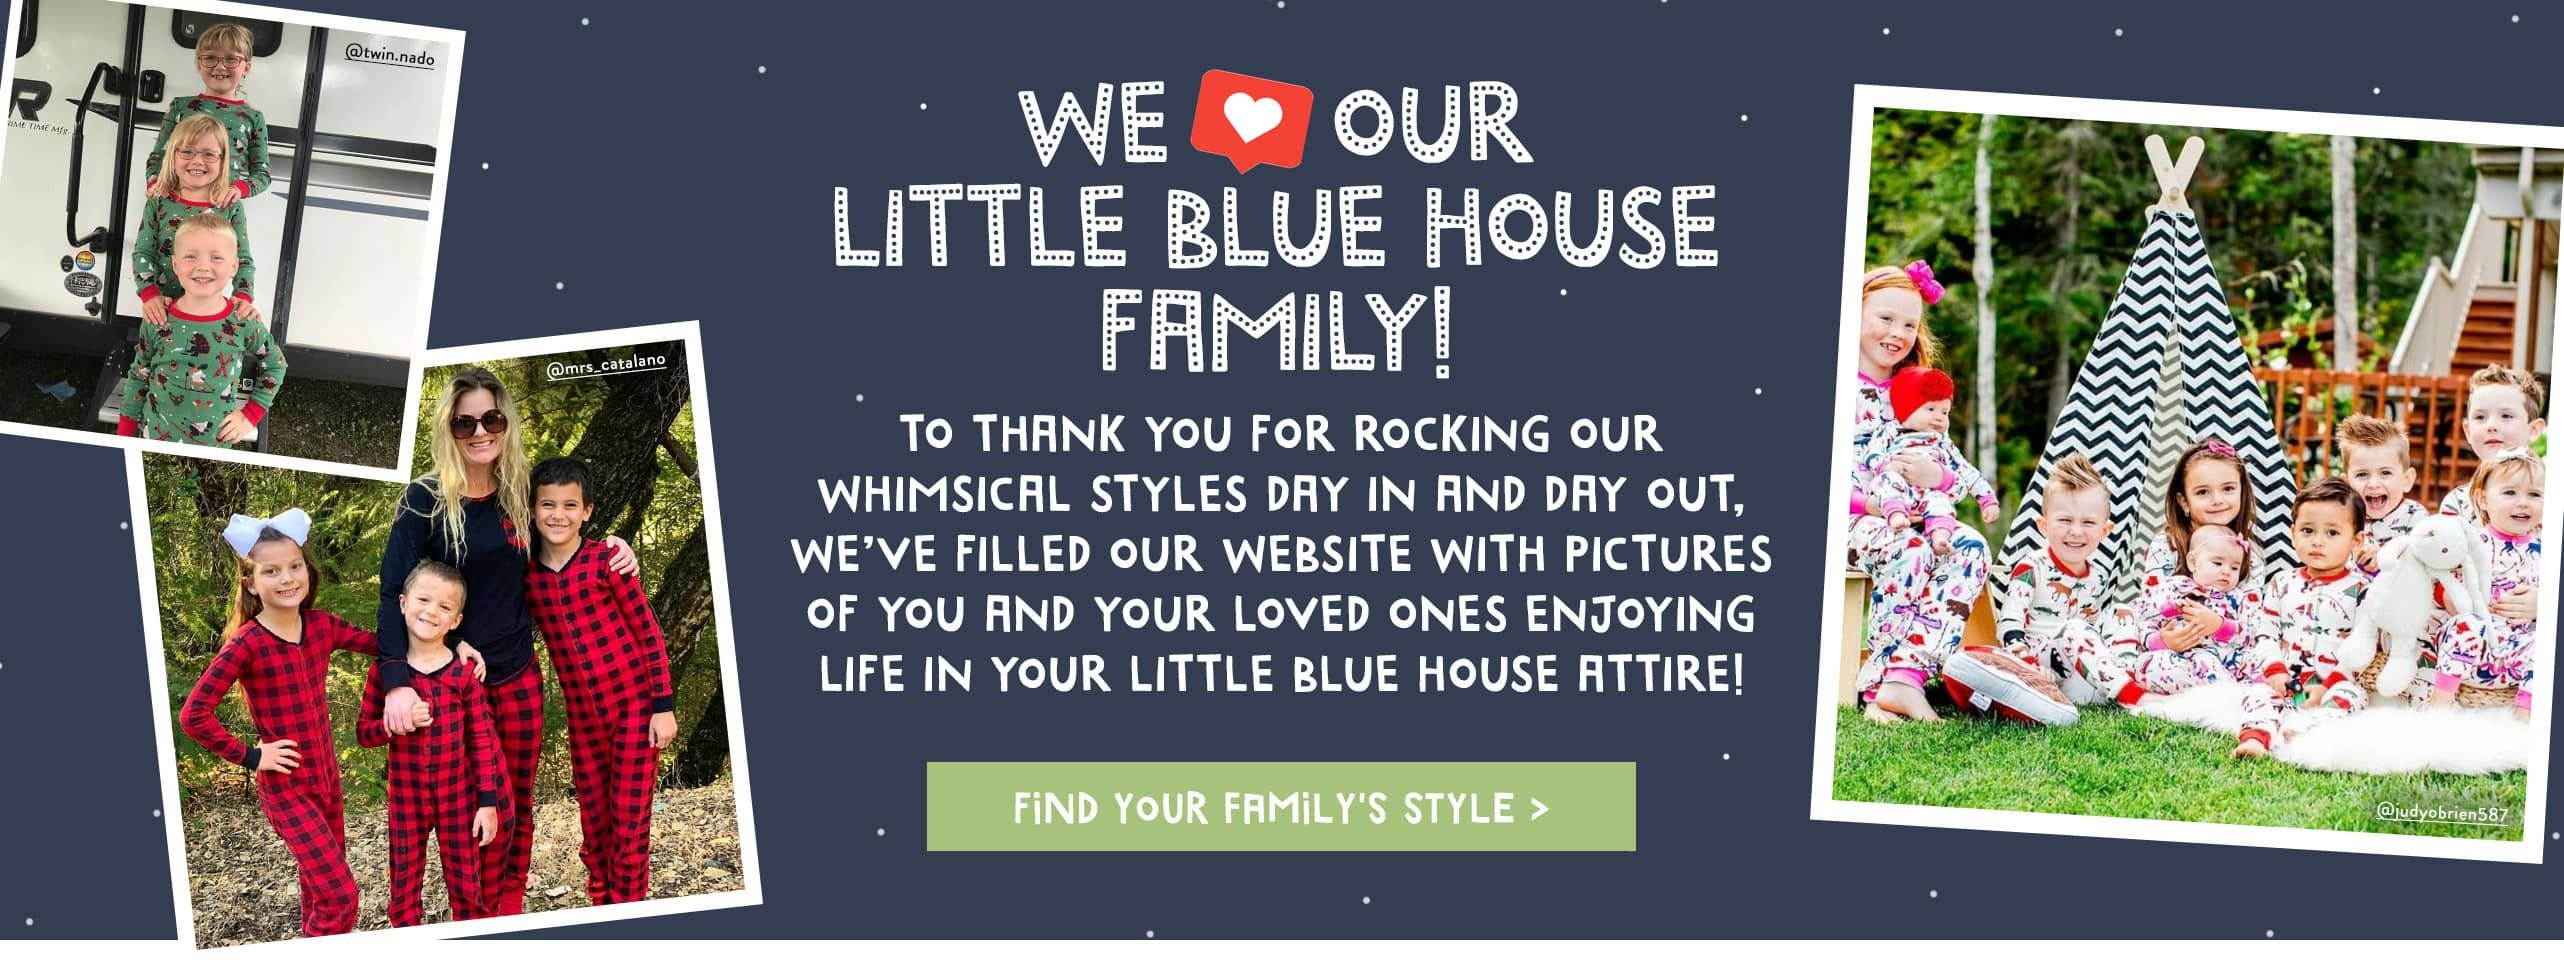 We love our Little Blue House Family